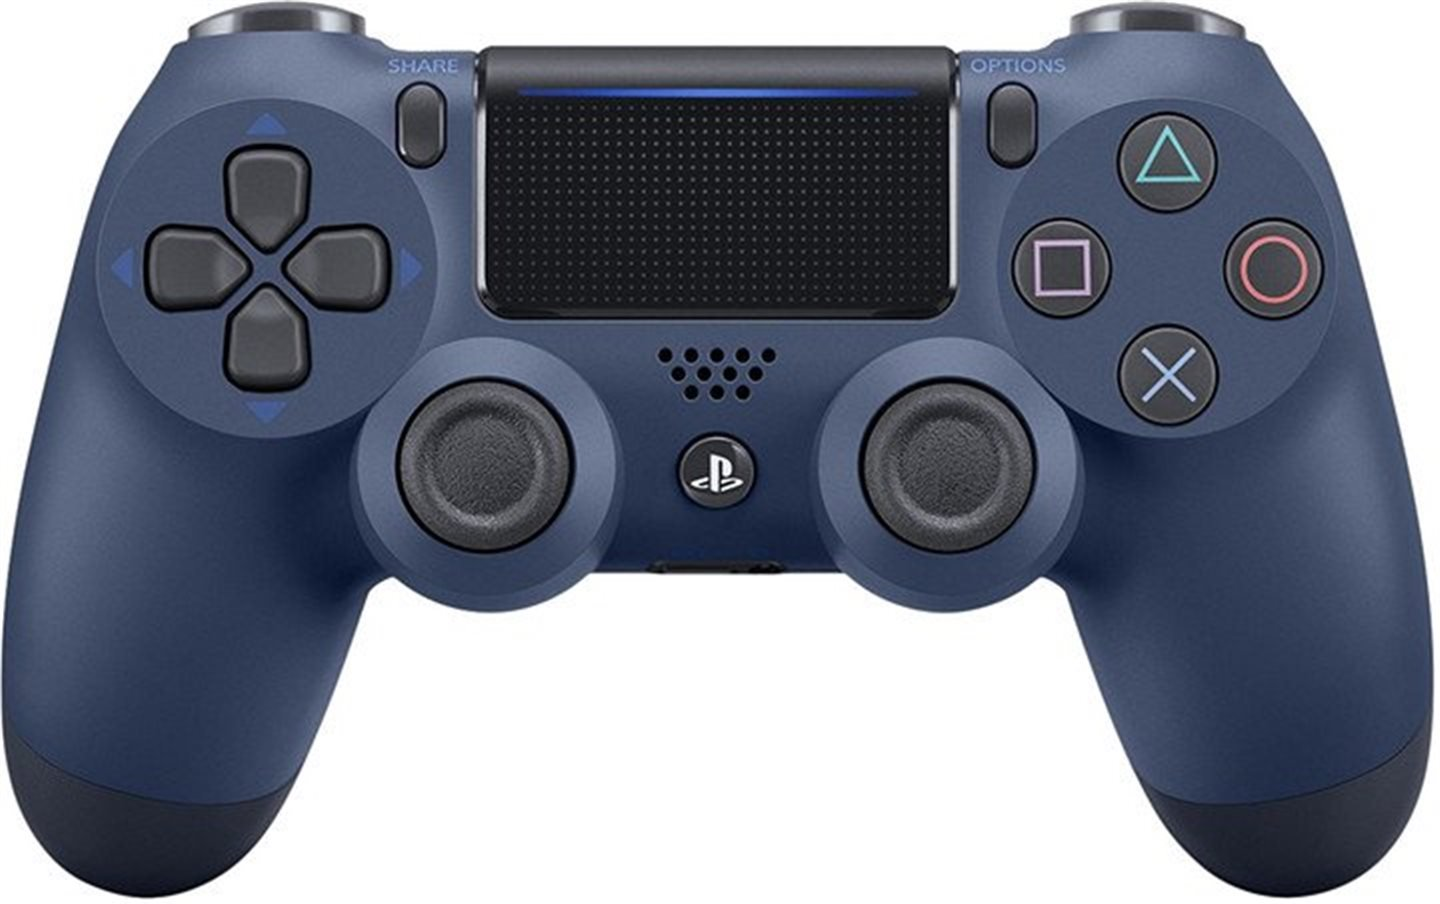 https://www.bigbang.si/upload/catalog/product/667943/sony-ps4-dualshock-4-v2-kontroler-temno-moder-box-_5f1a5db6c05ef.jpg